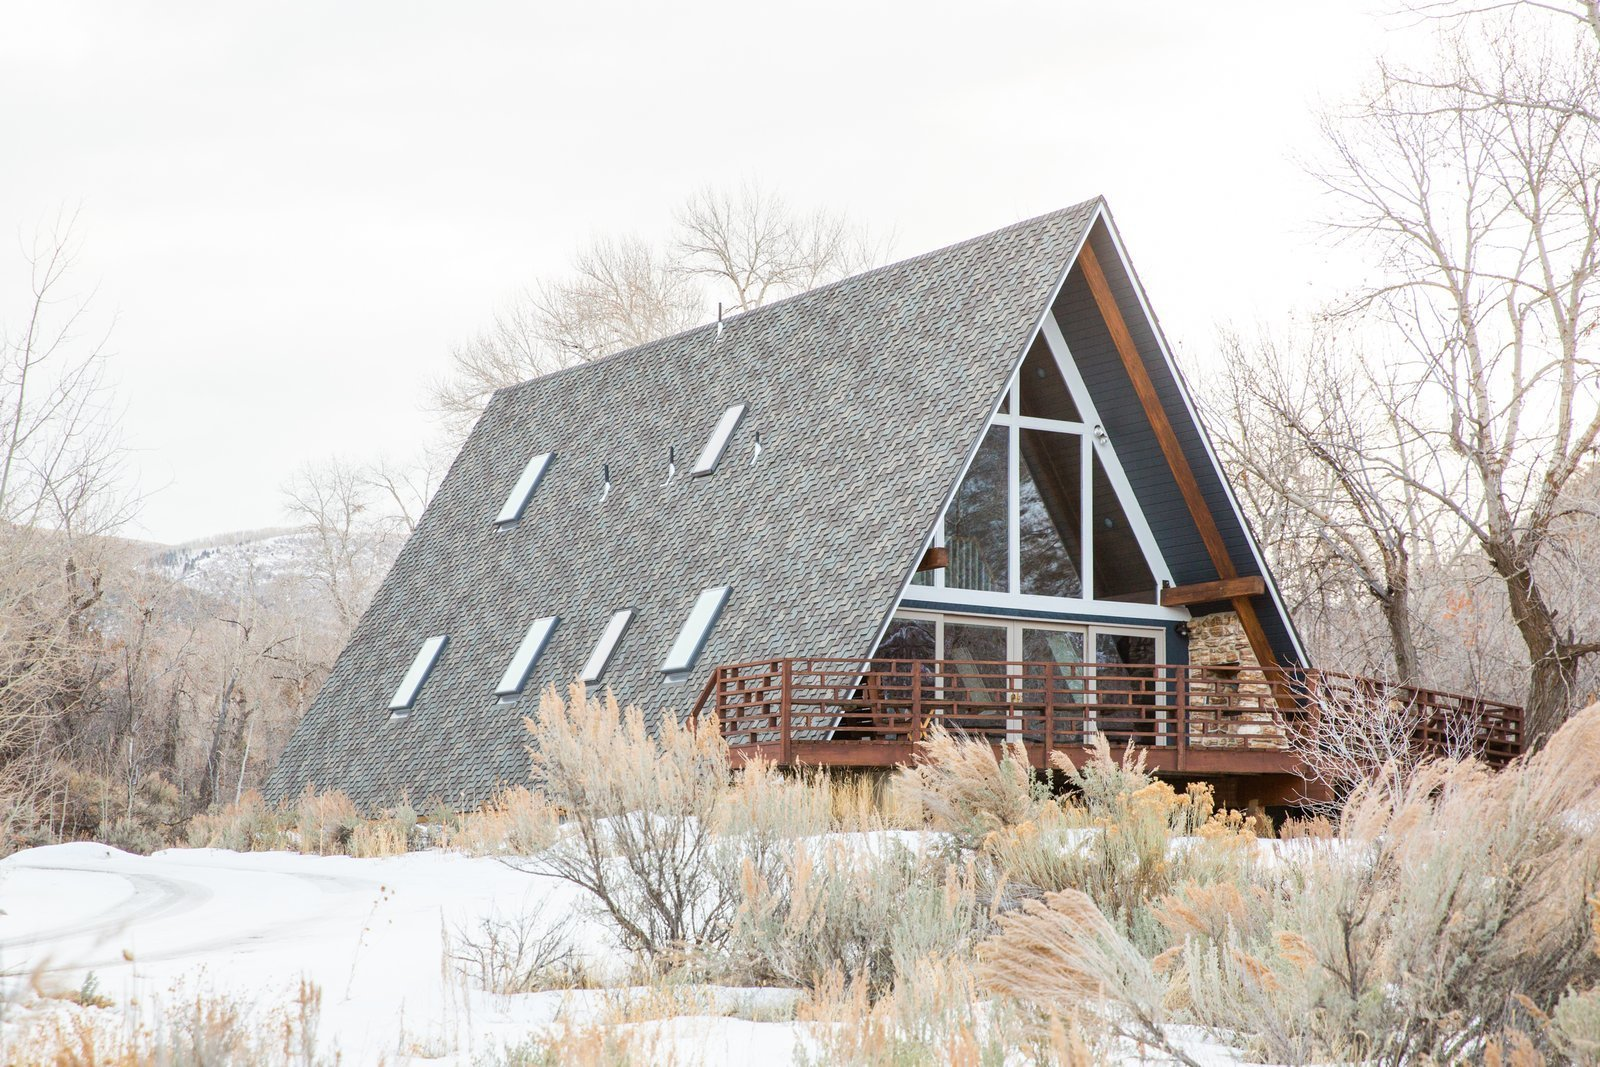 A-Frame Haus Modern Home in Heber City, Utah on Dwell